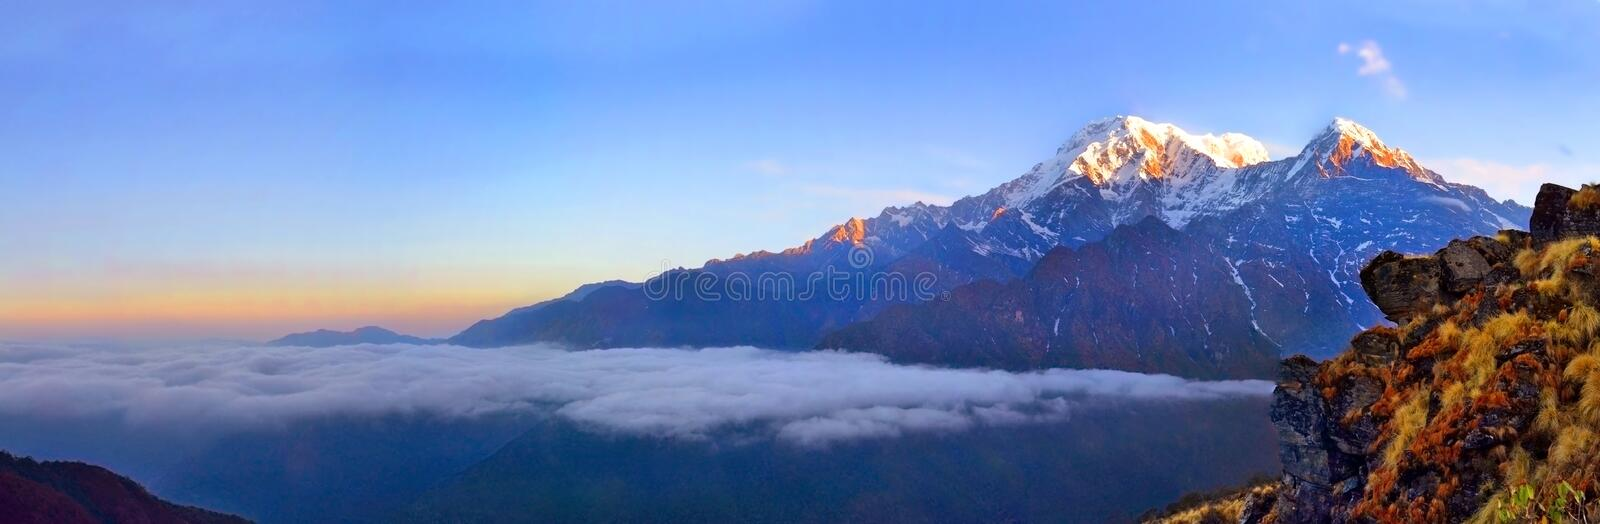 Mountain Landscape in Himalaya. Above clouds. Annapurna South peak. stock photo